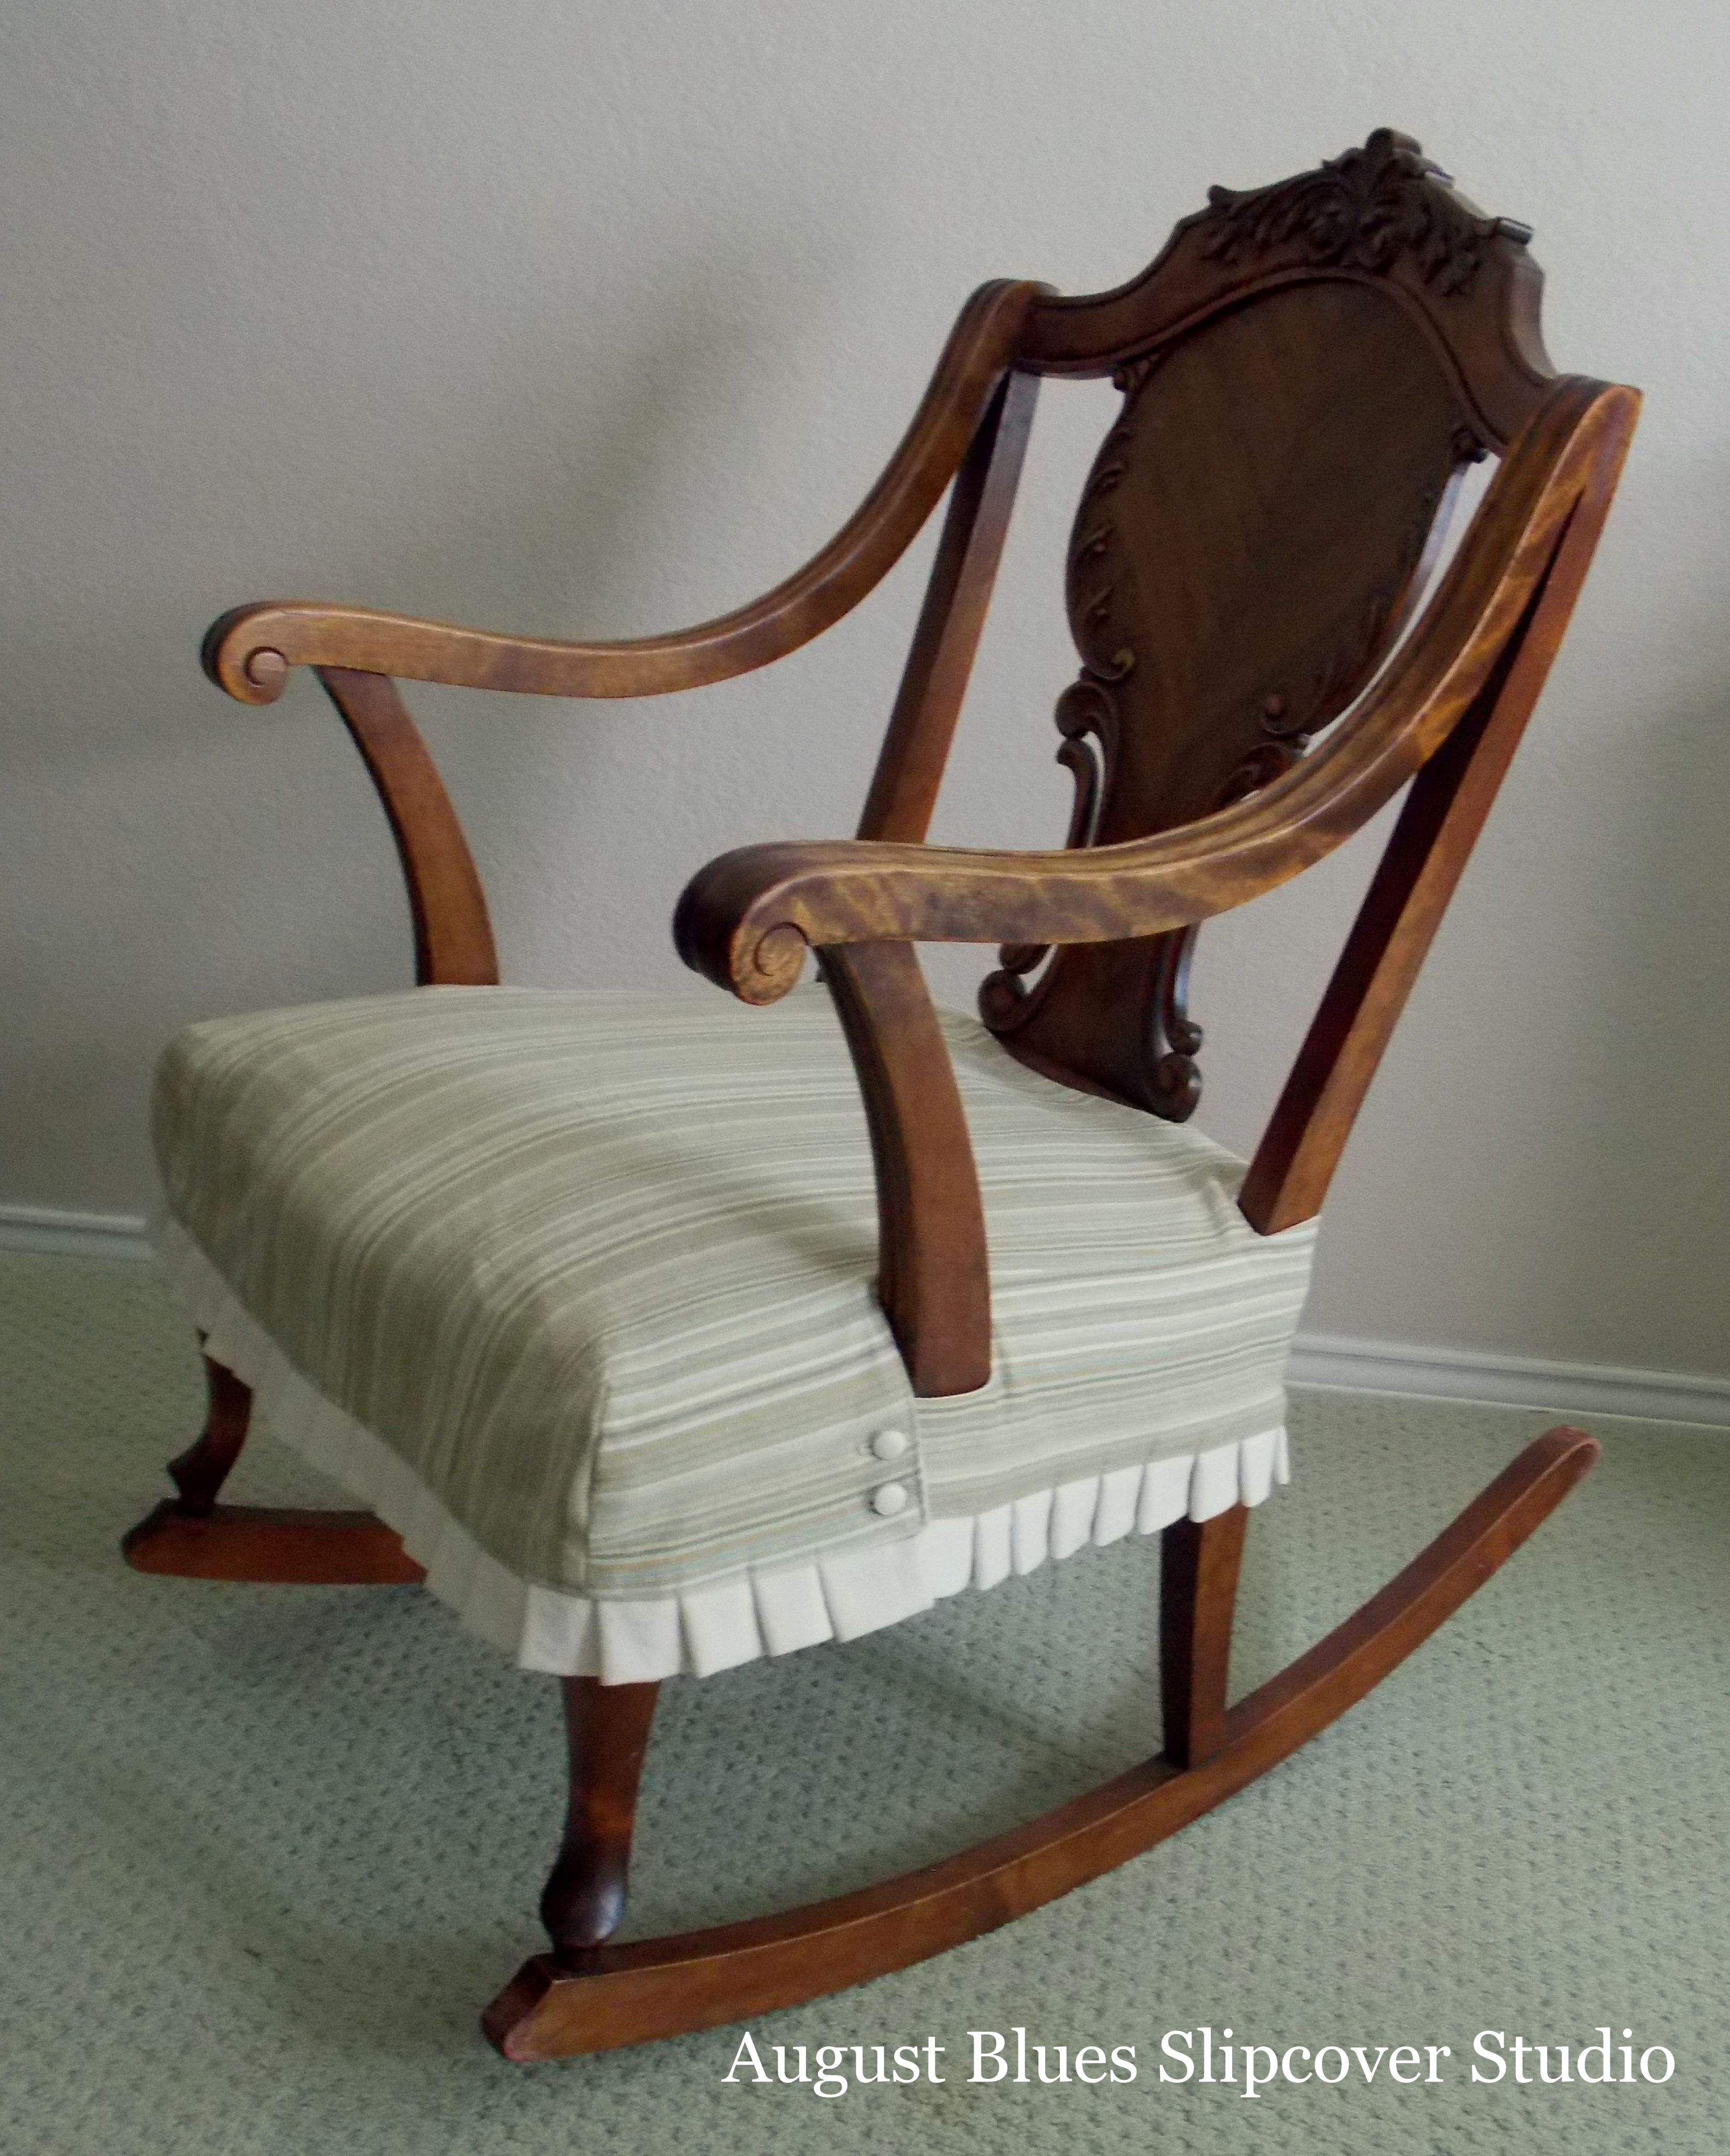 Pin by Helen Geraci on SLIPCOVERS Slipcovers for chairs